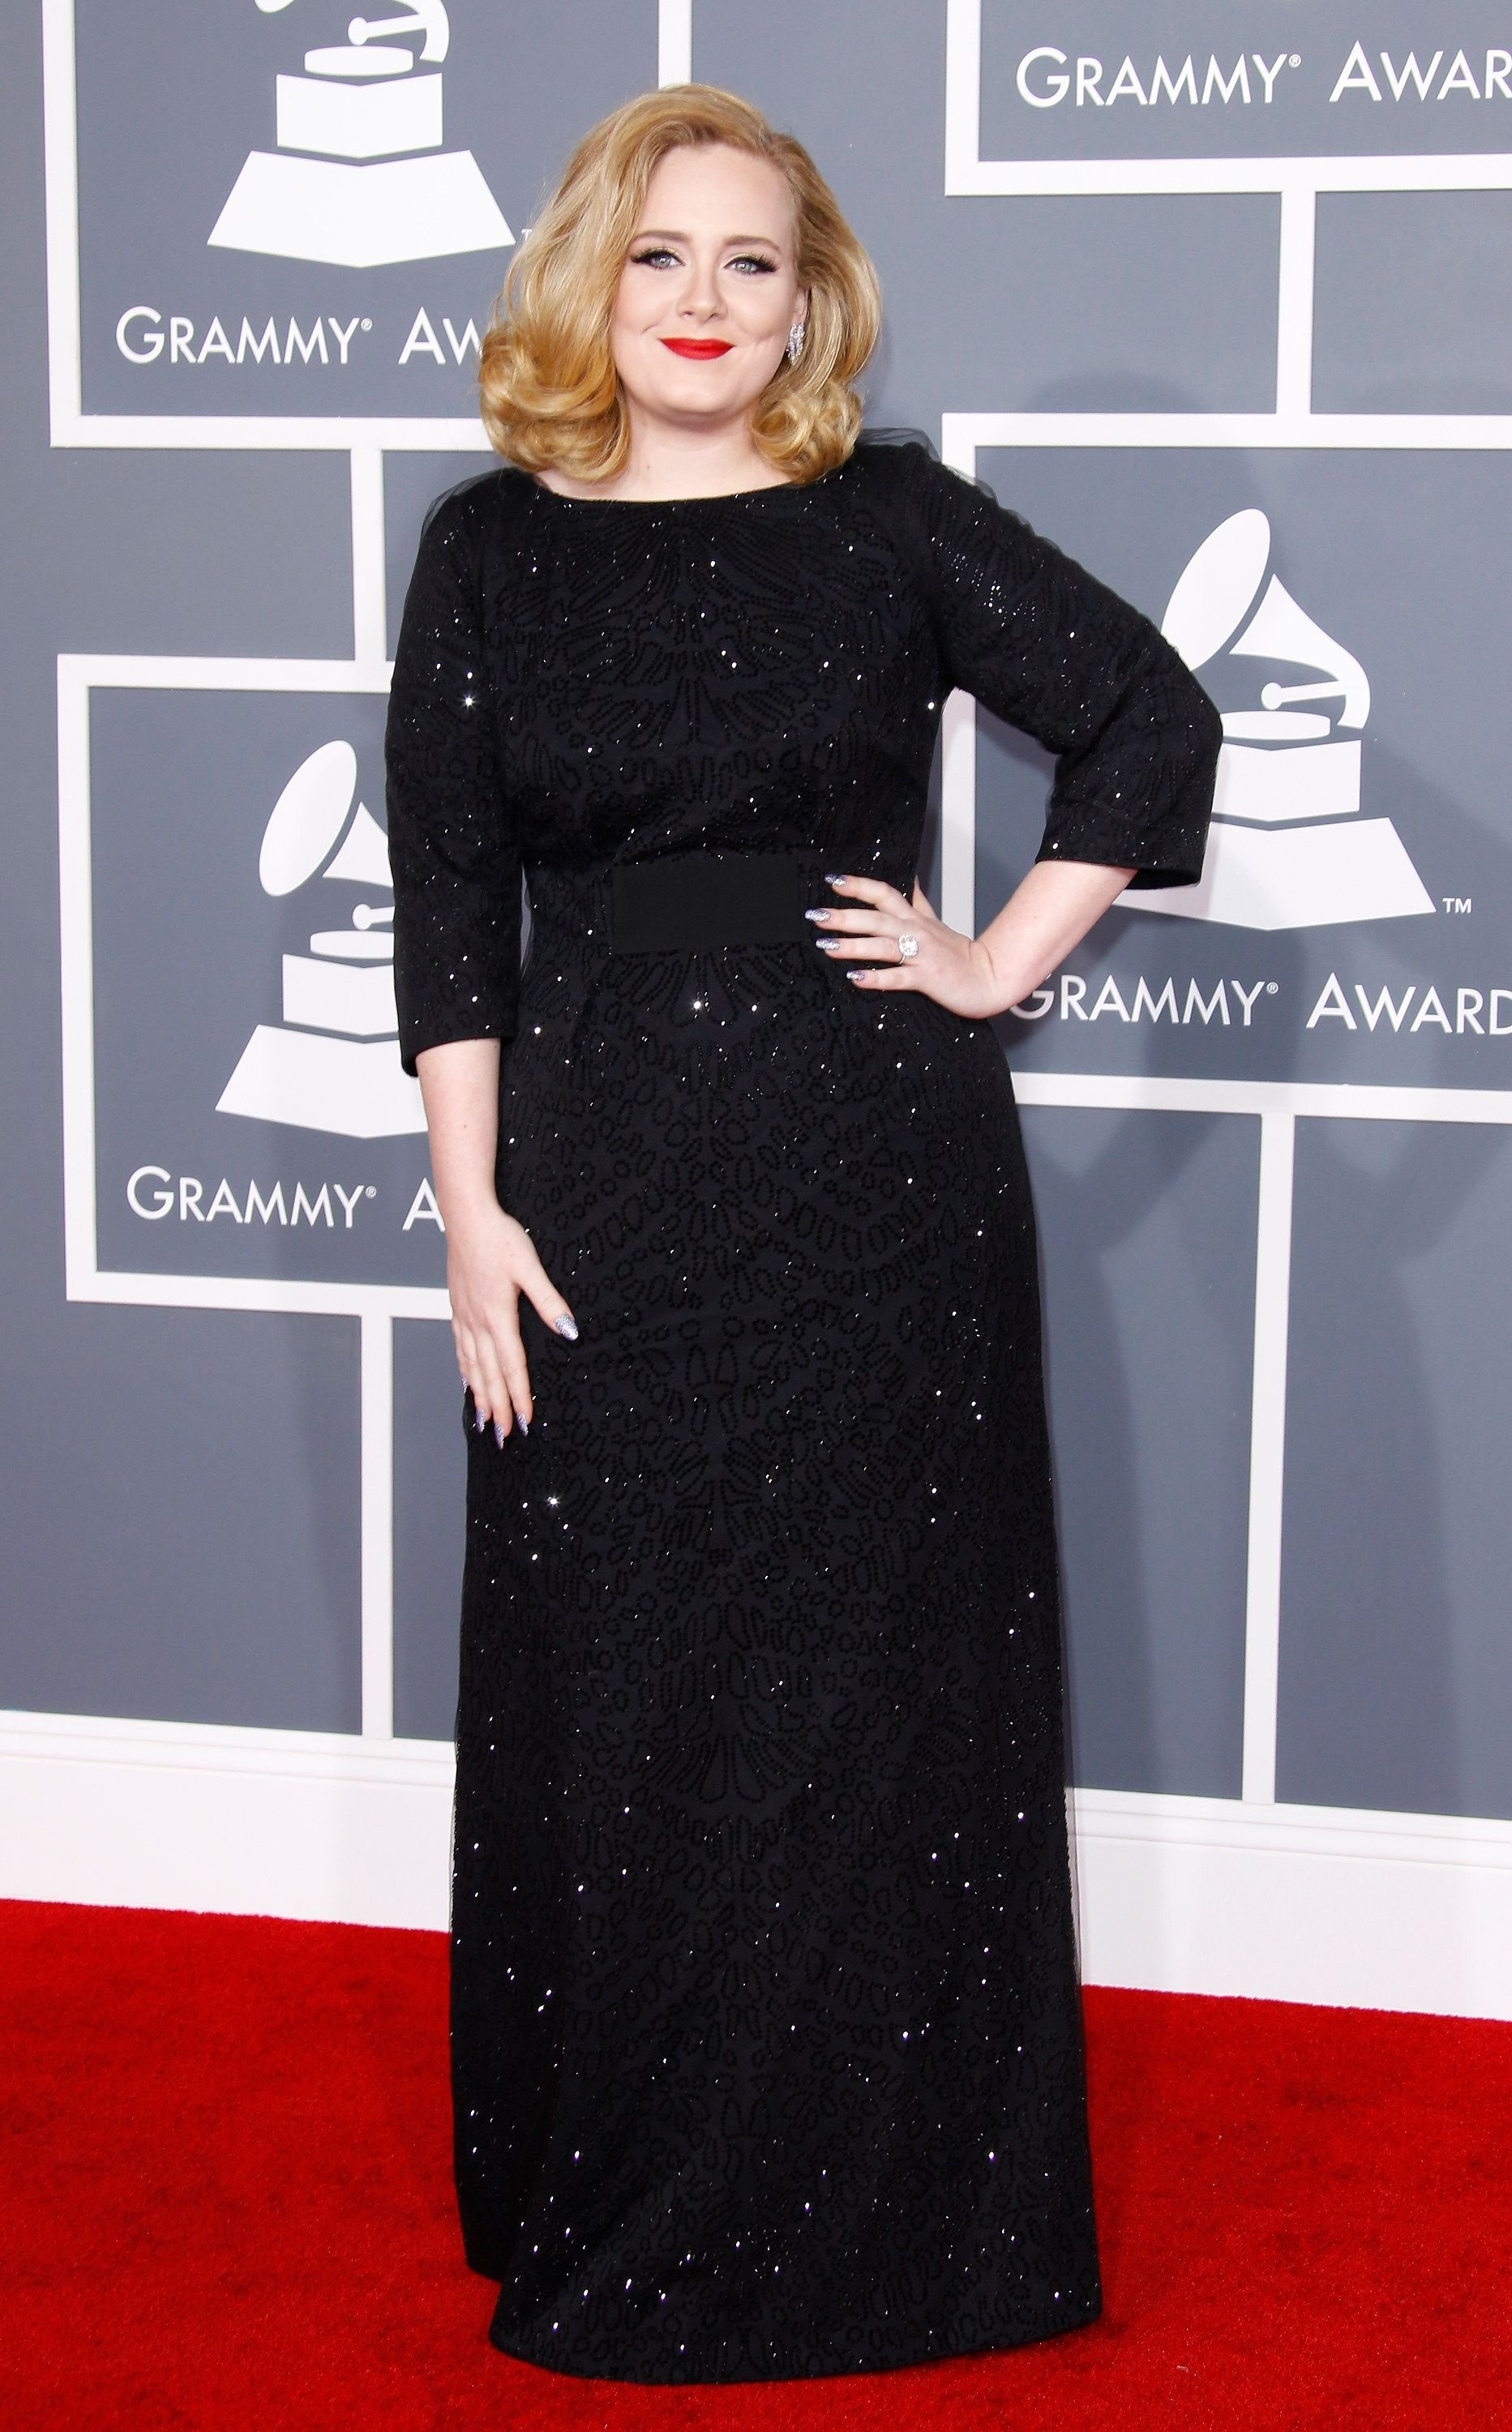 Adele at the 54th Annual GrammyAwardson February 12, 2012, in Los Angeles, California | Photo: Dan MacMedan/WireImage/Getty Images